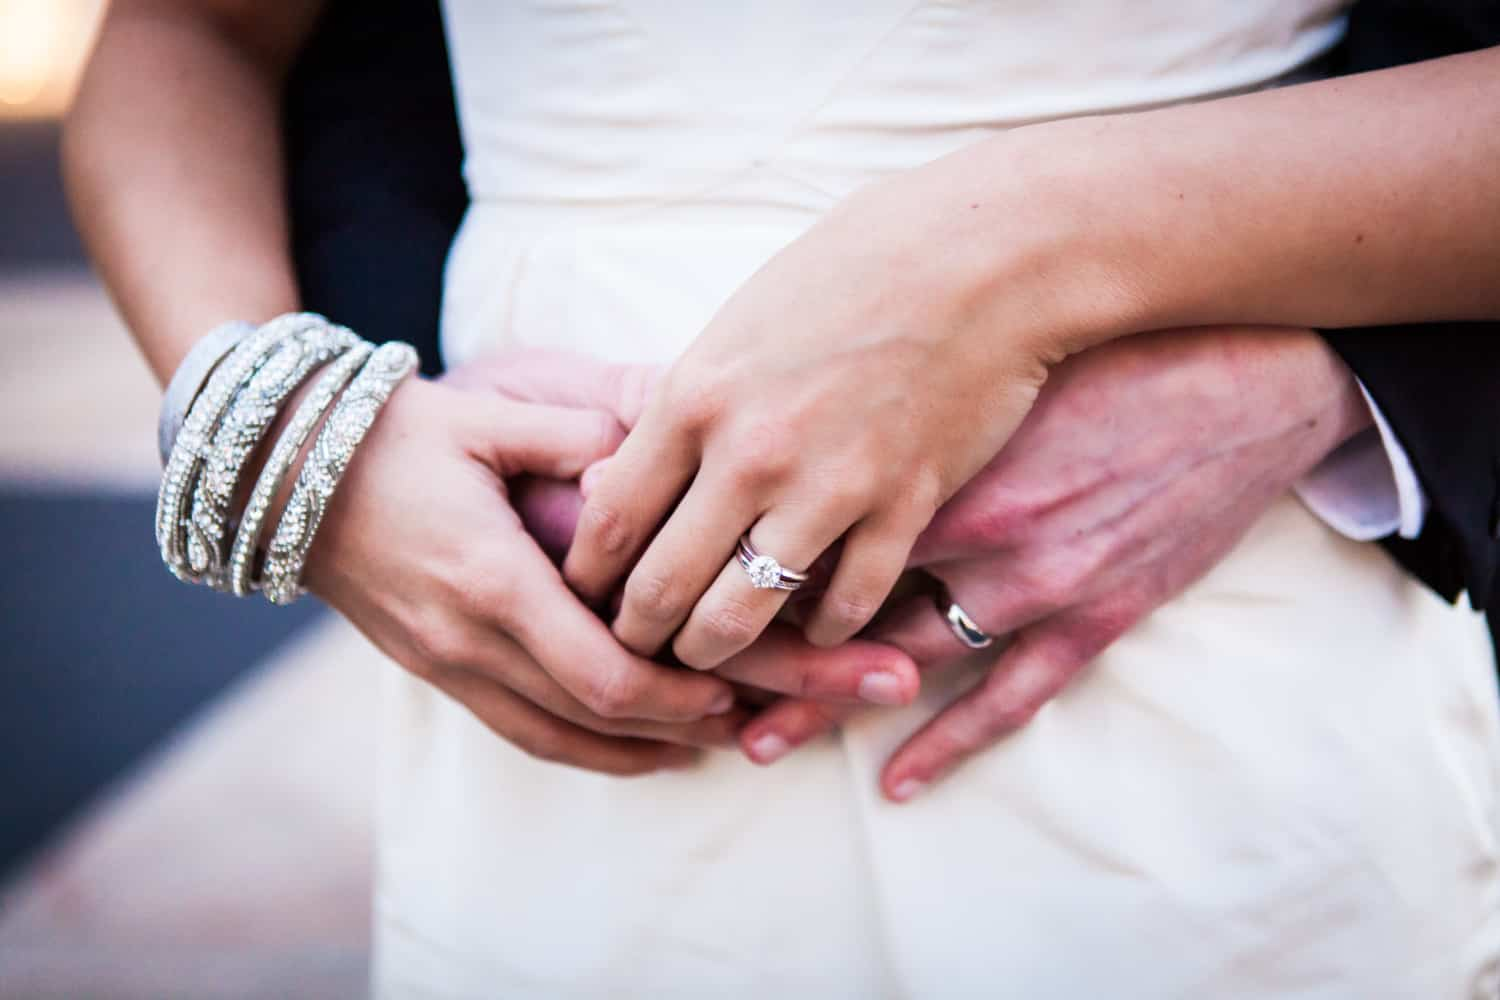 Close up on couple's hands wearing wedding rings